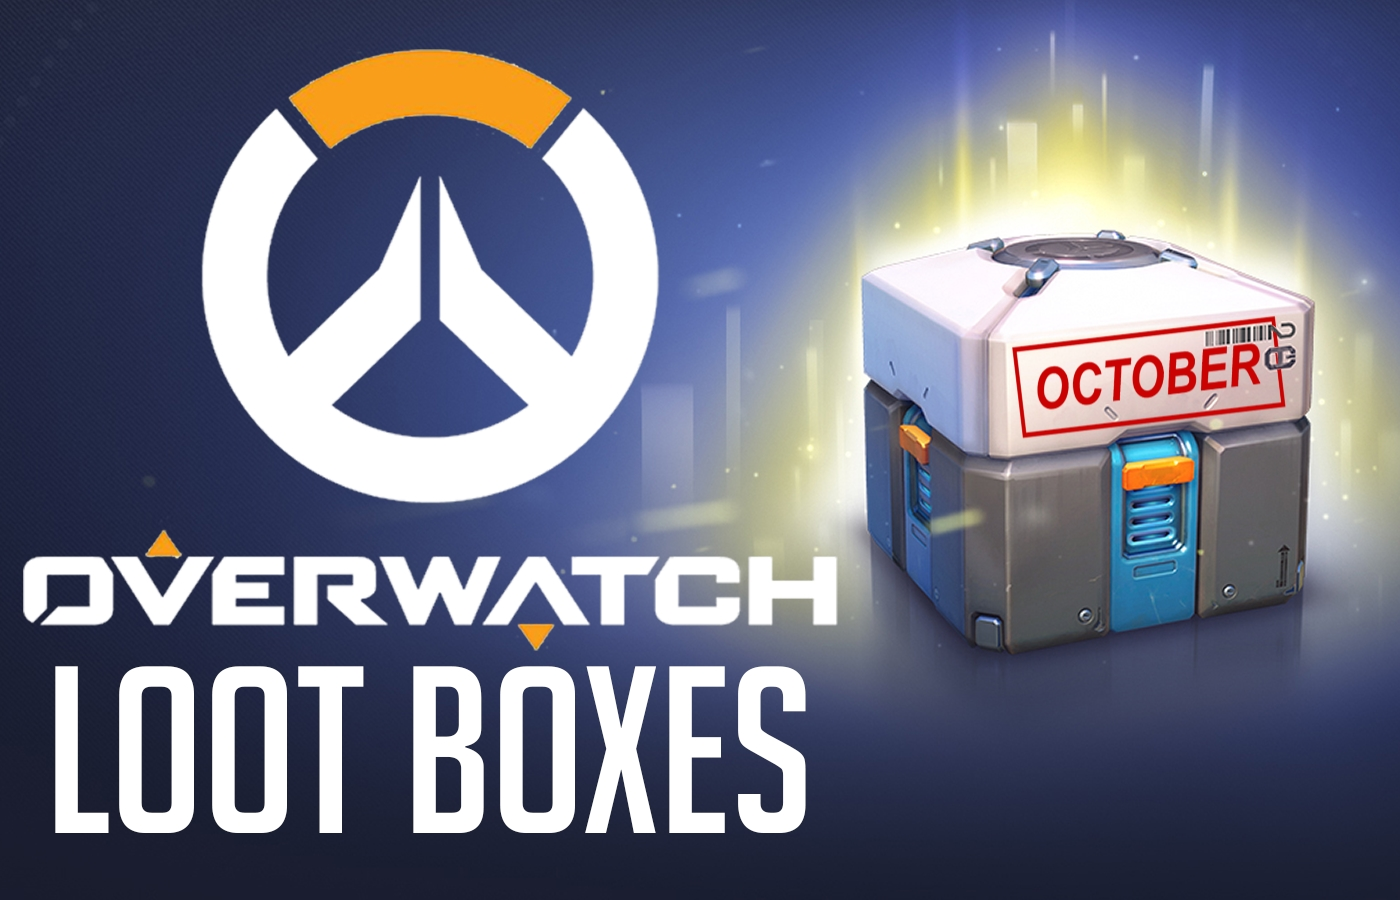 Overwatch Loot Box x5 [Twitch Prime] Ключ (ОКТЯБРЬ)